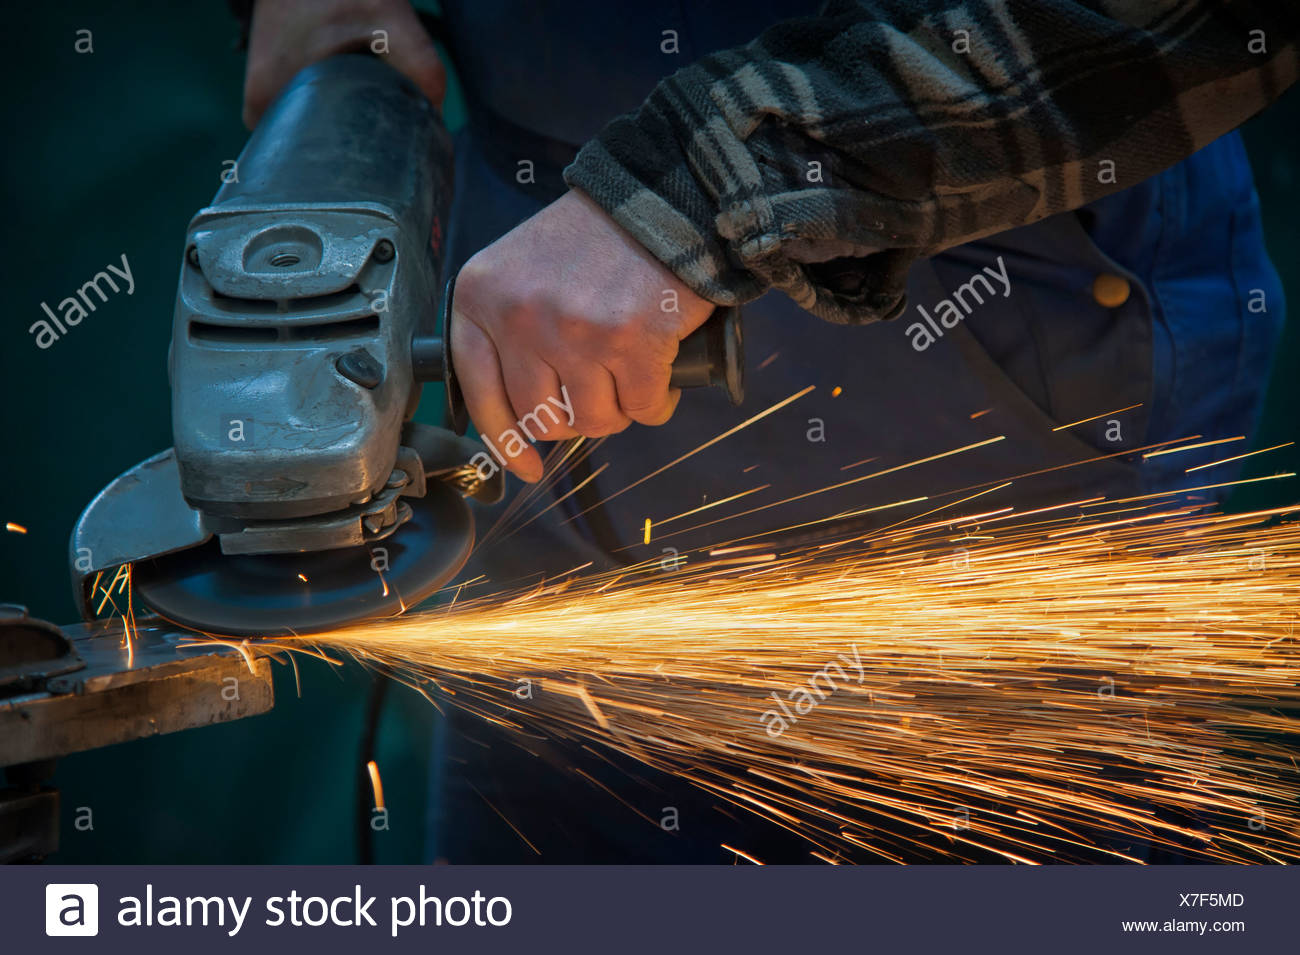 Hands of a worker using an angle grinder - Stock Image